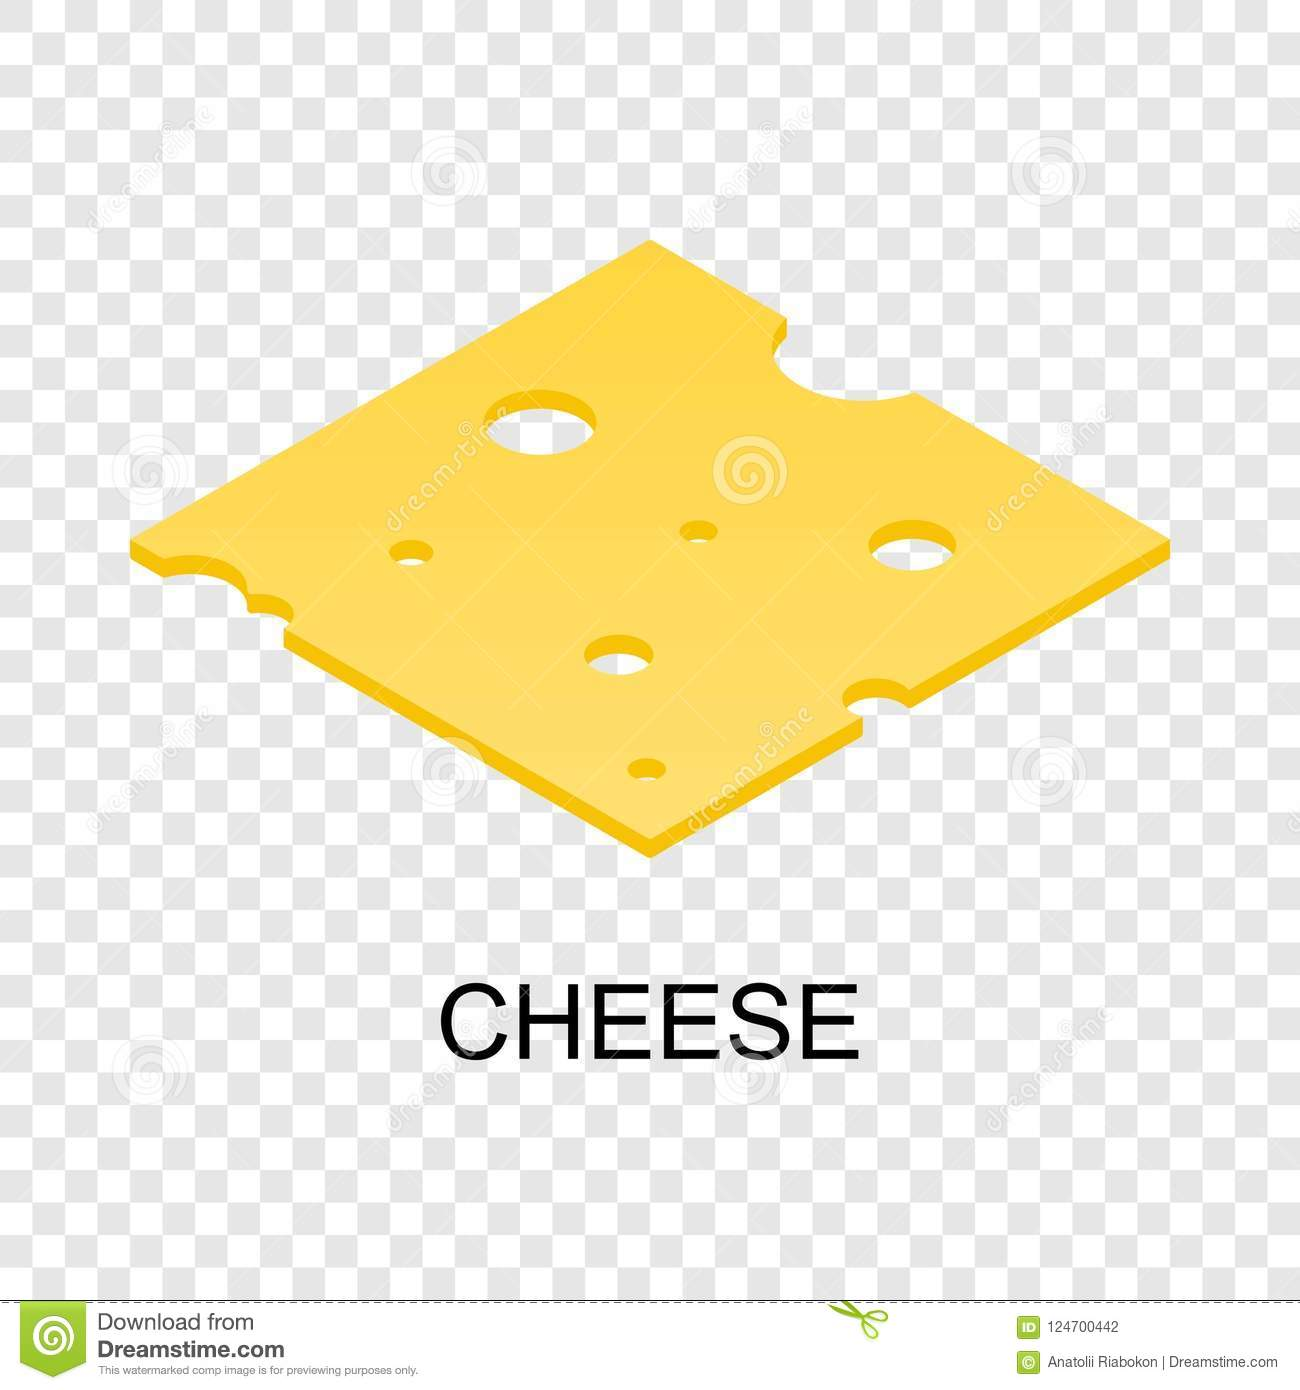 Sliced cheese icon, isometric style